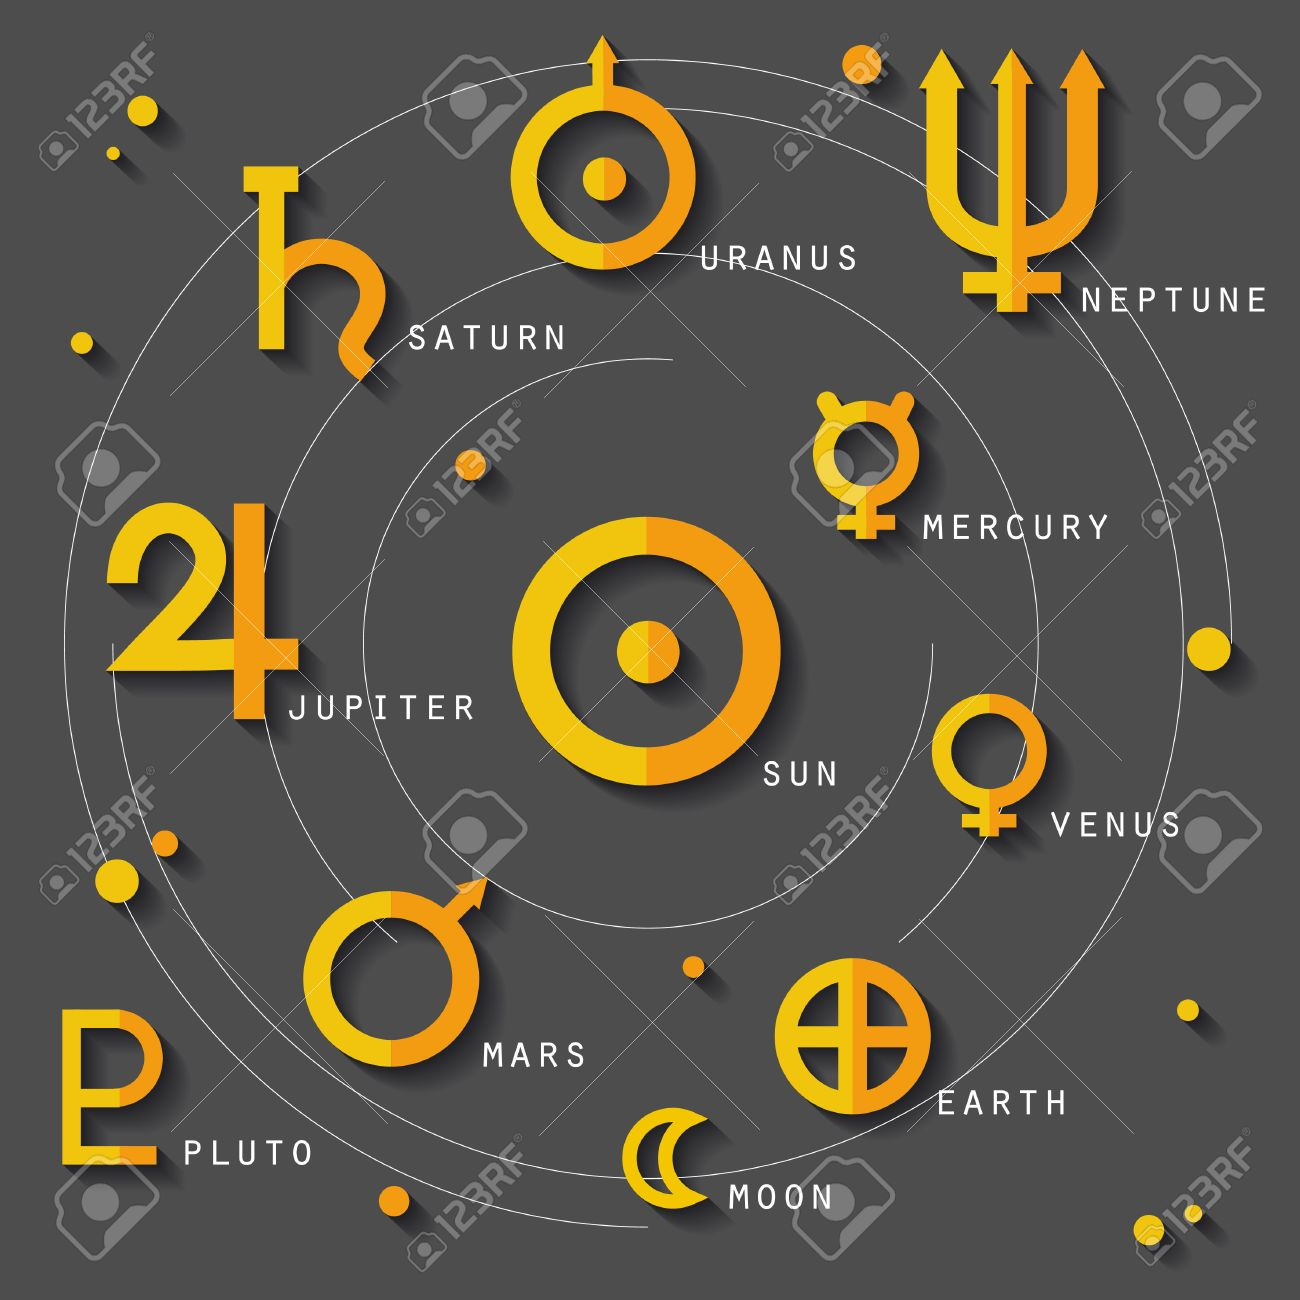 Zodiac and astrology symbols of sun moon solar system planets zodiac and astrology symbols of sun moon solar system planets and stars with captions on biocorpaavc Images